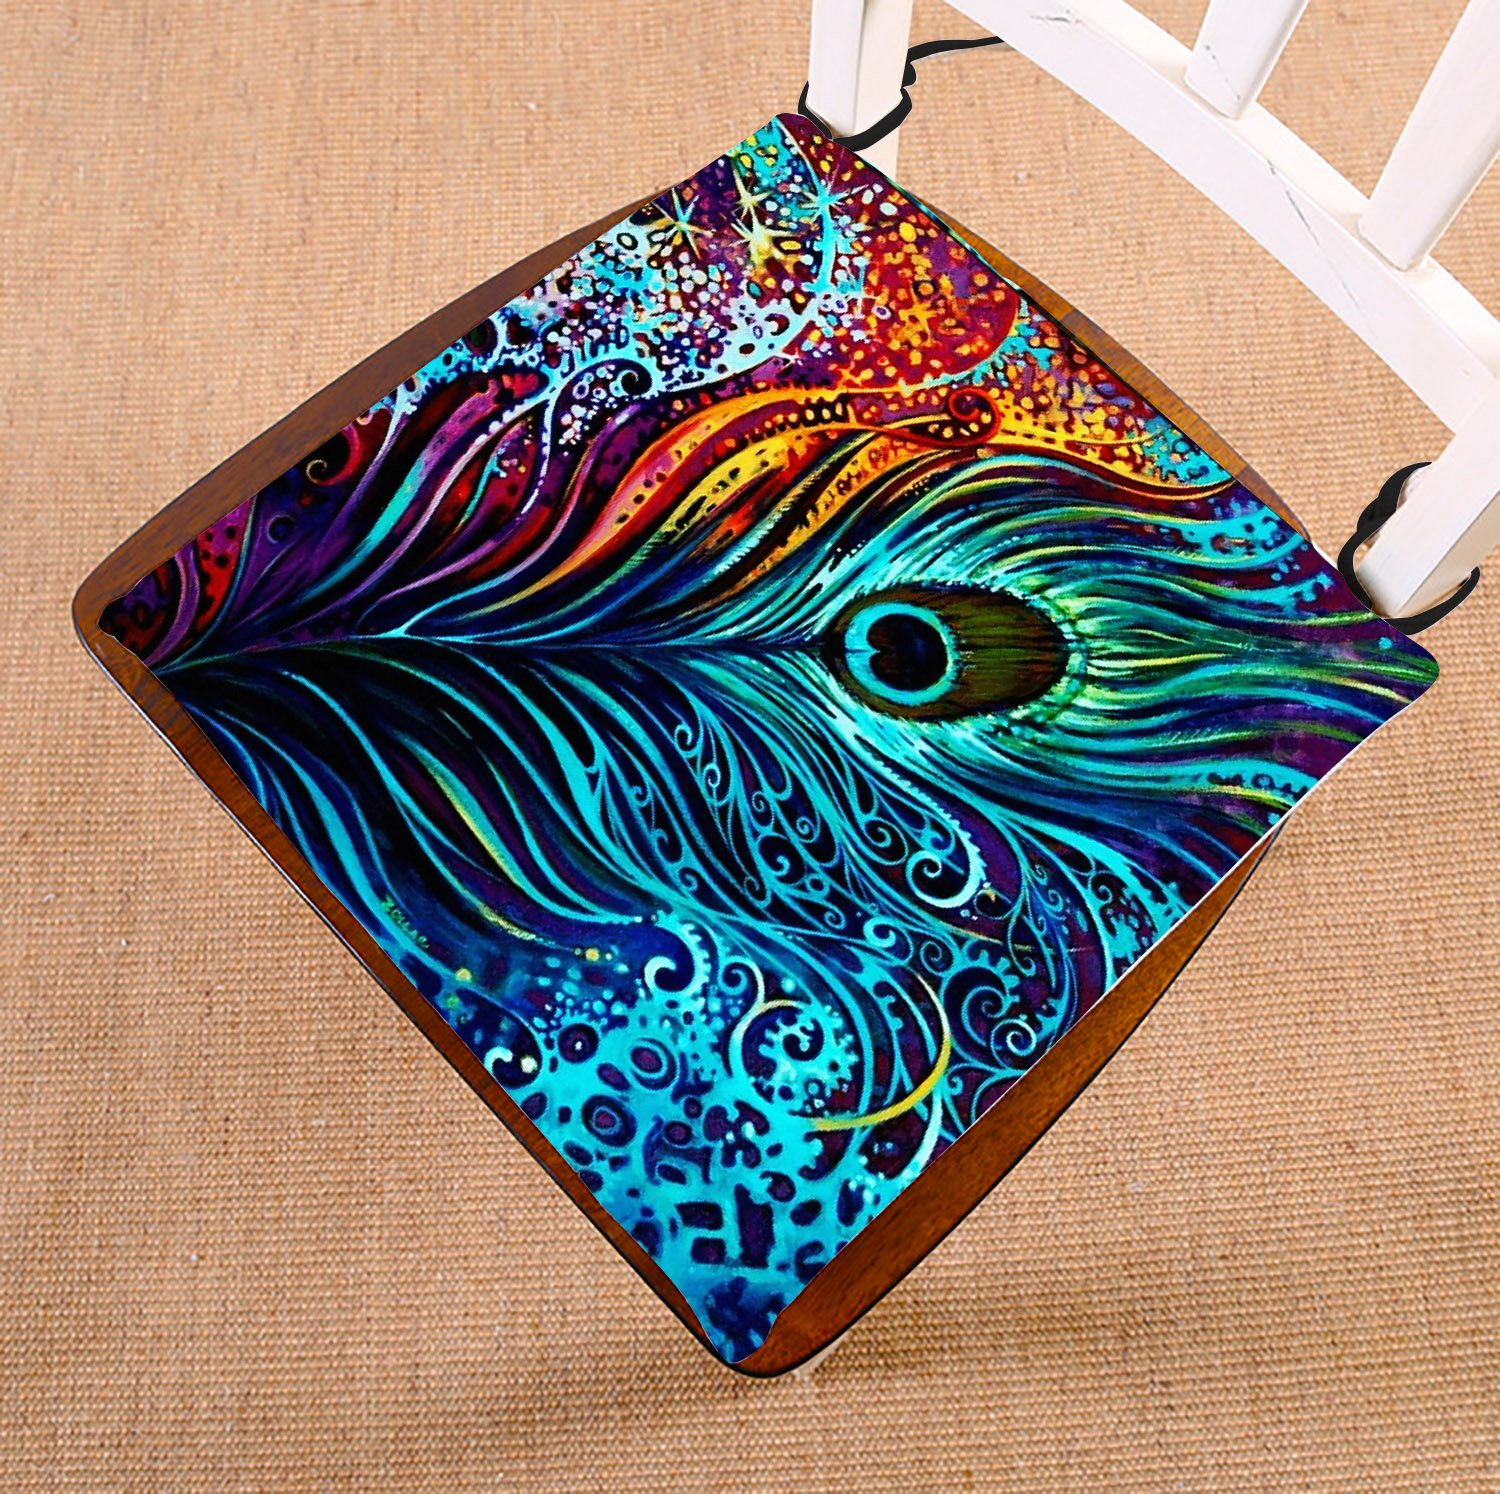 GCKG Colorful Peacock Design Chair Pad Seat Cushion Chair Cushion Floor Cushion with Breathable Memory Inner Cushion and Ties Two Sides Printing 16x16 inches